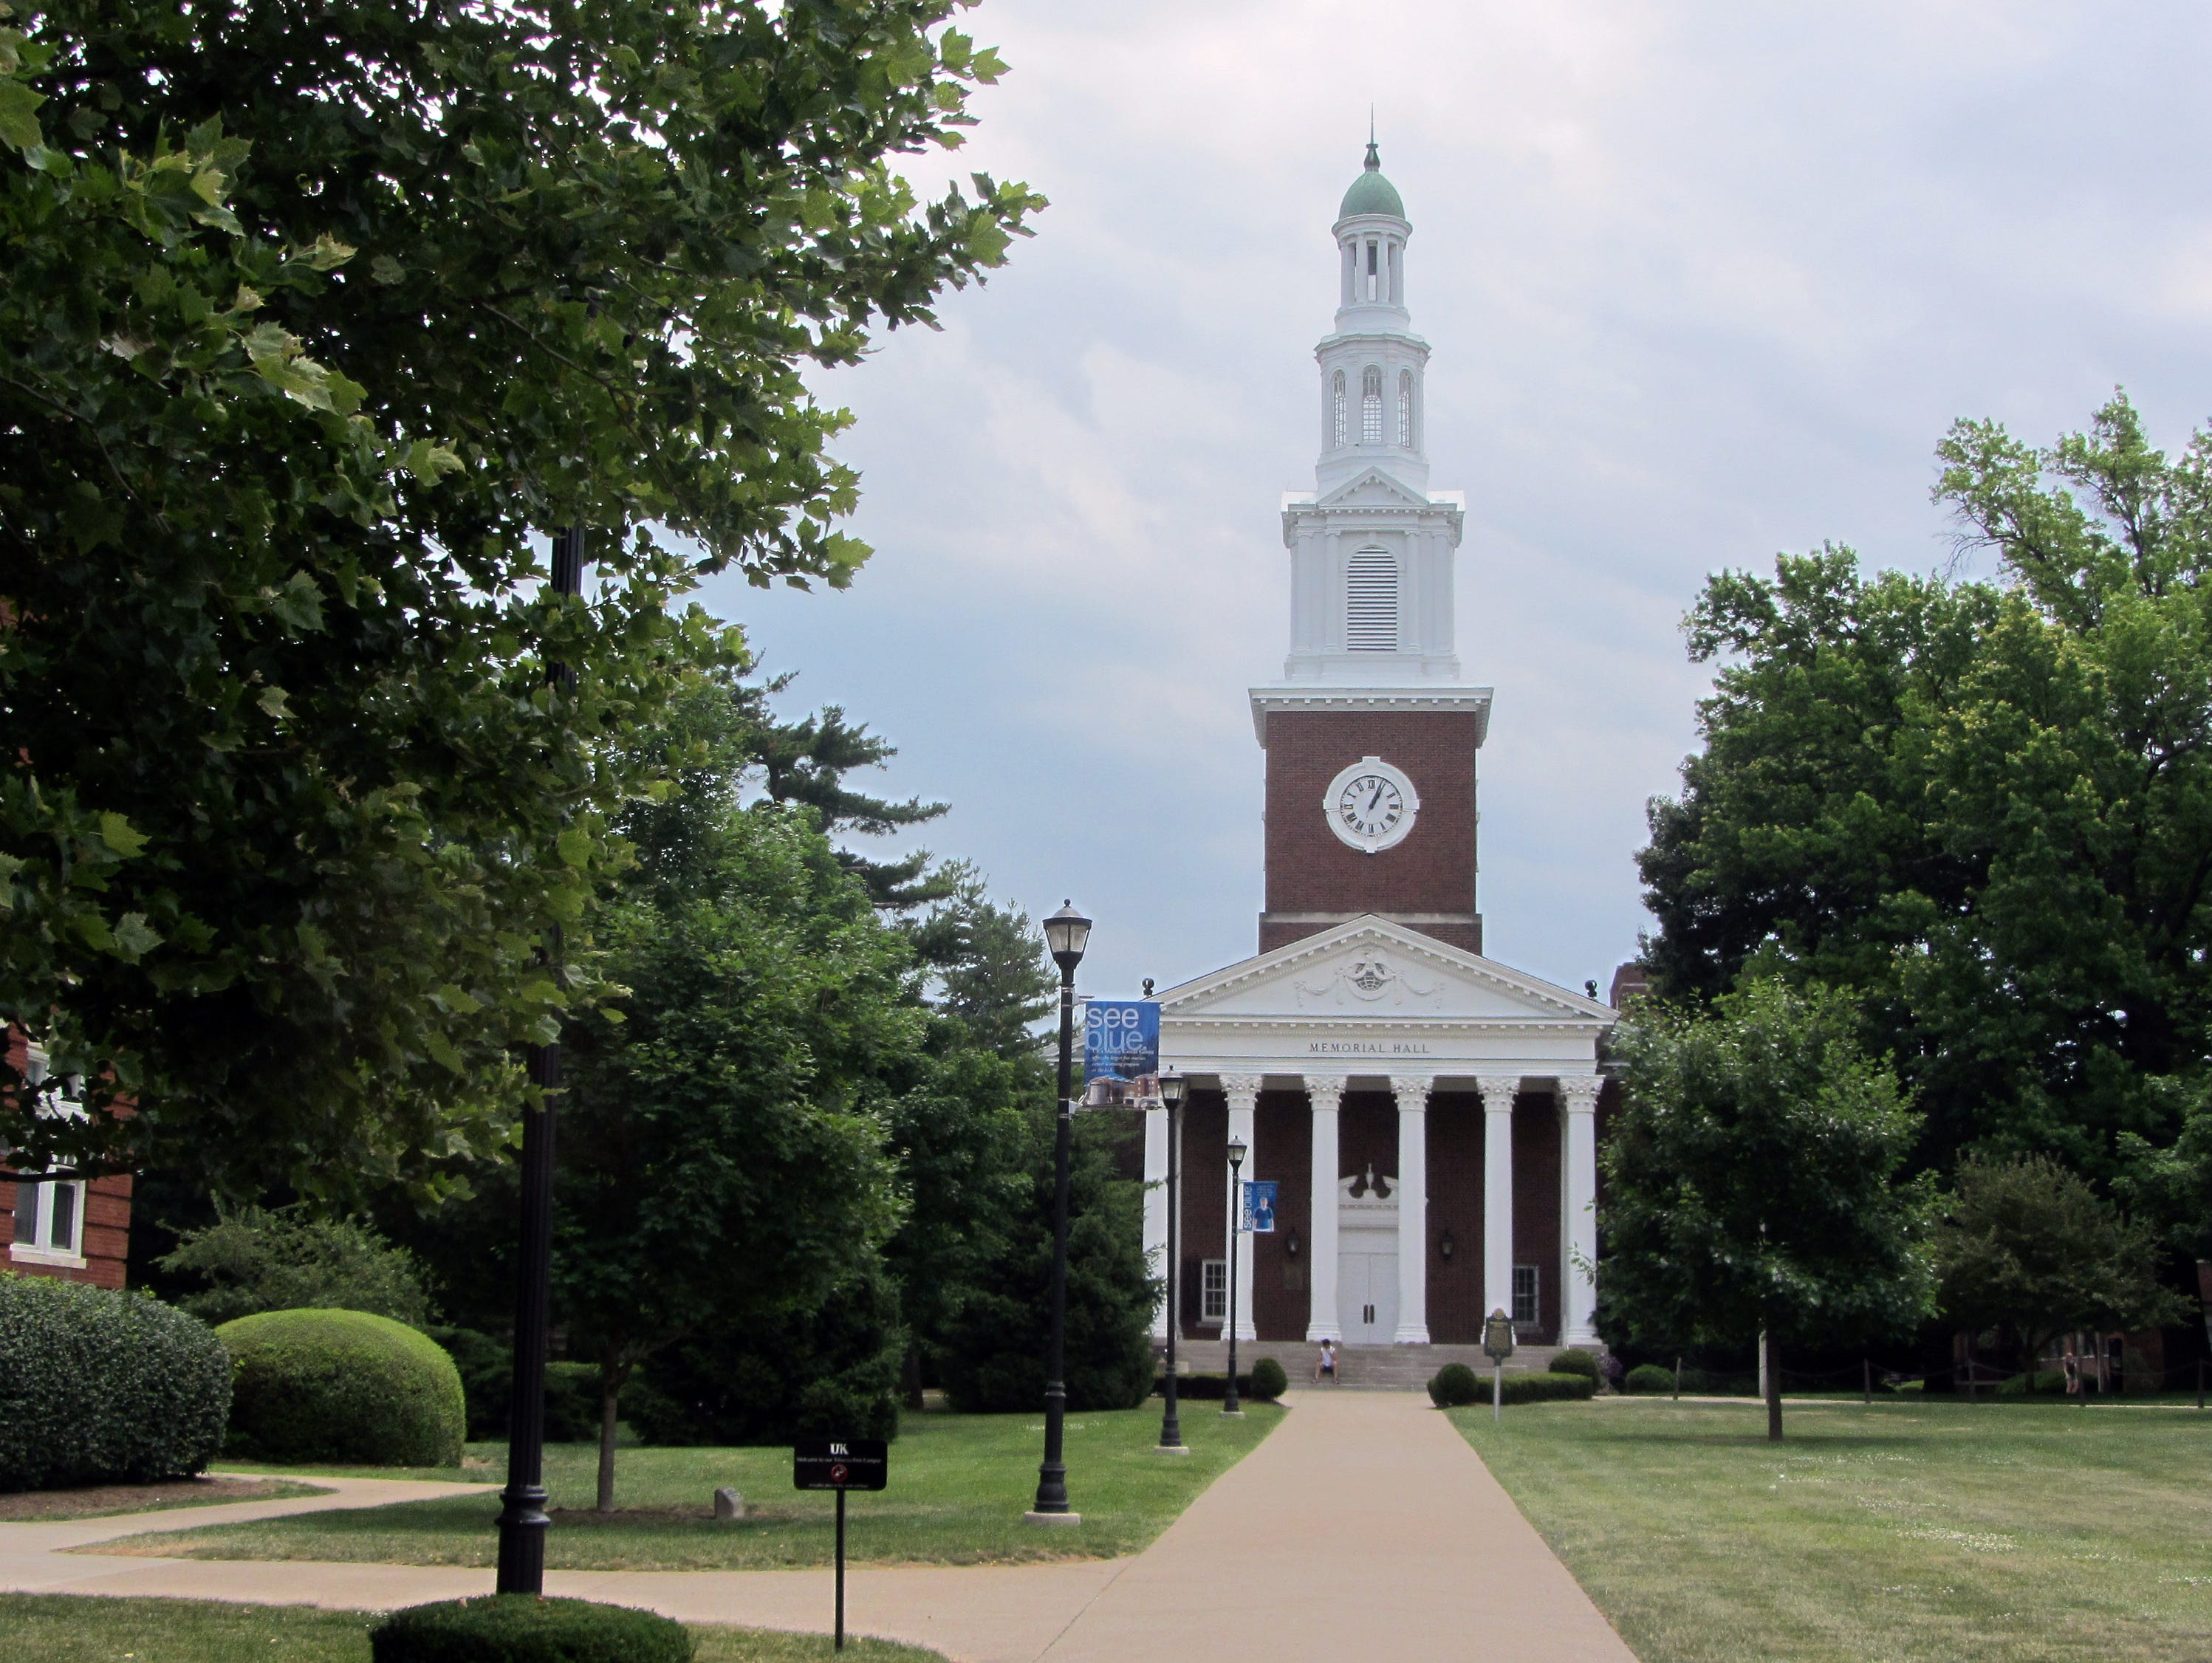 Memorial Hall on UK's campus in Lexington. May 26, 2012